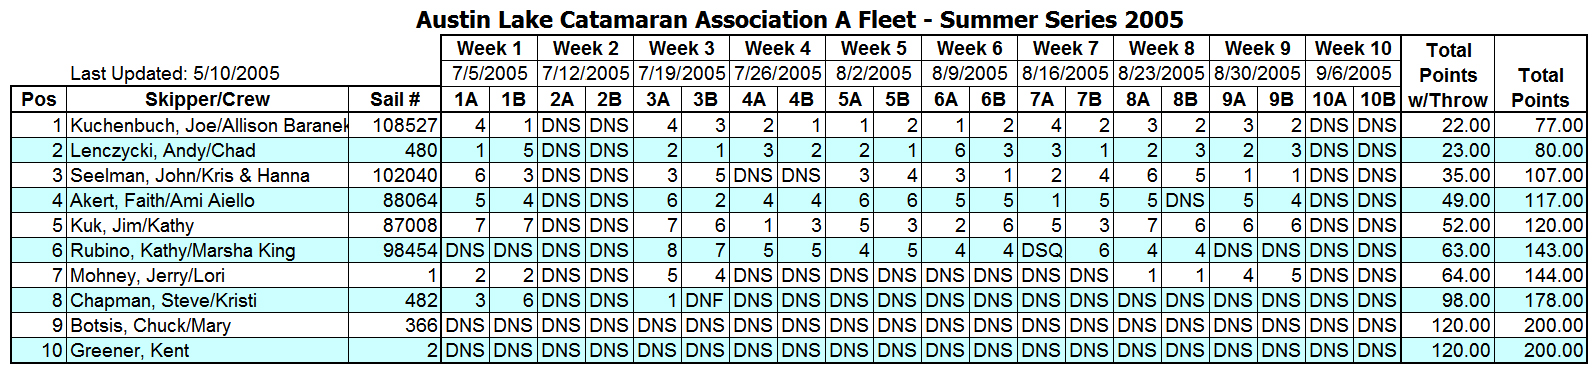 2005 Summer Portsmouth A Fleet Results